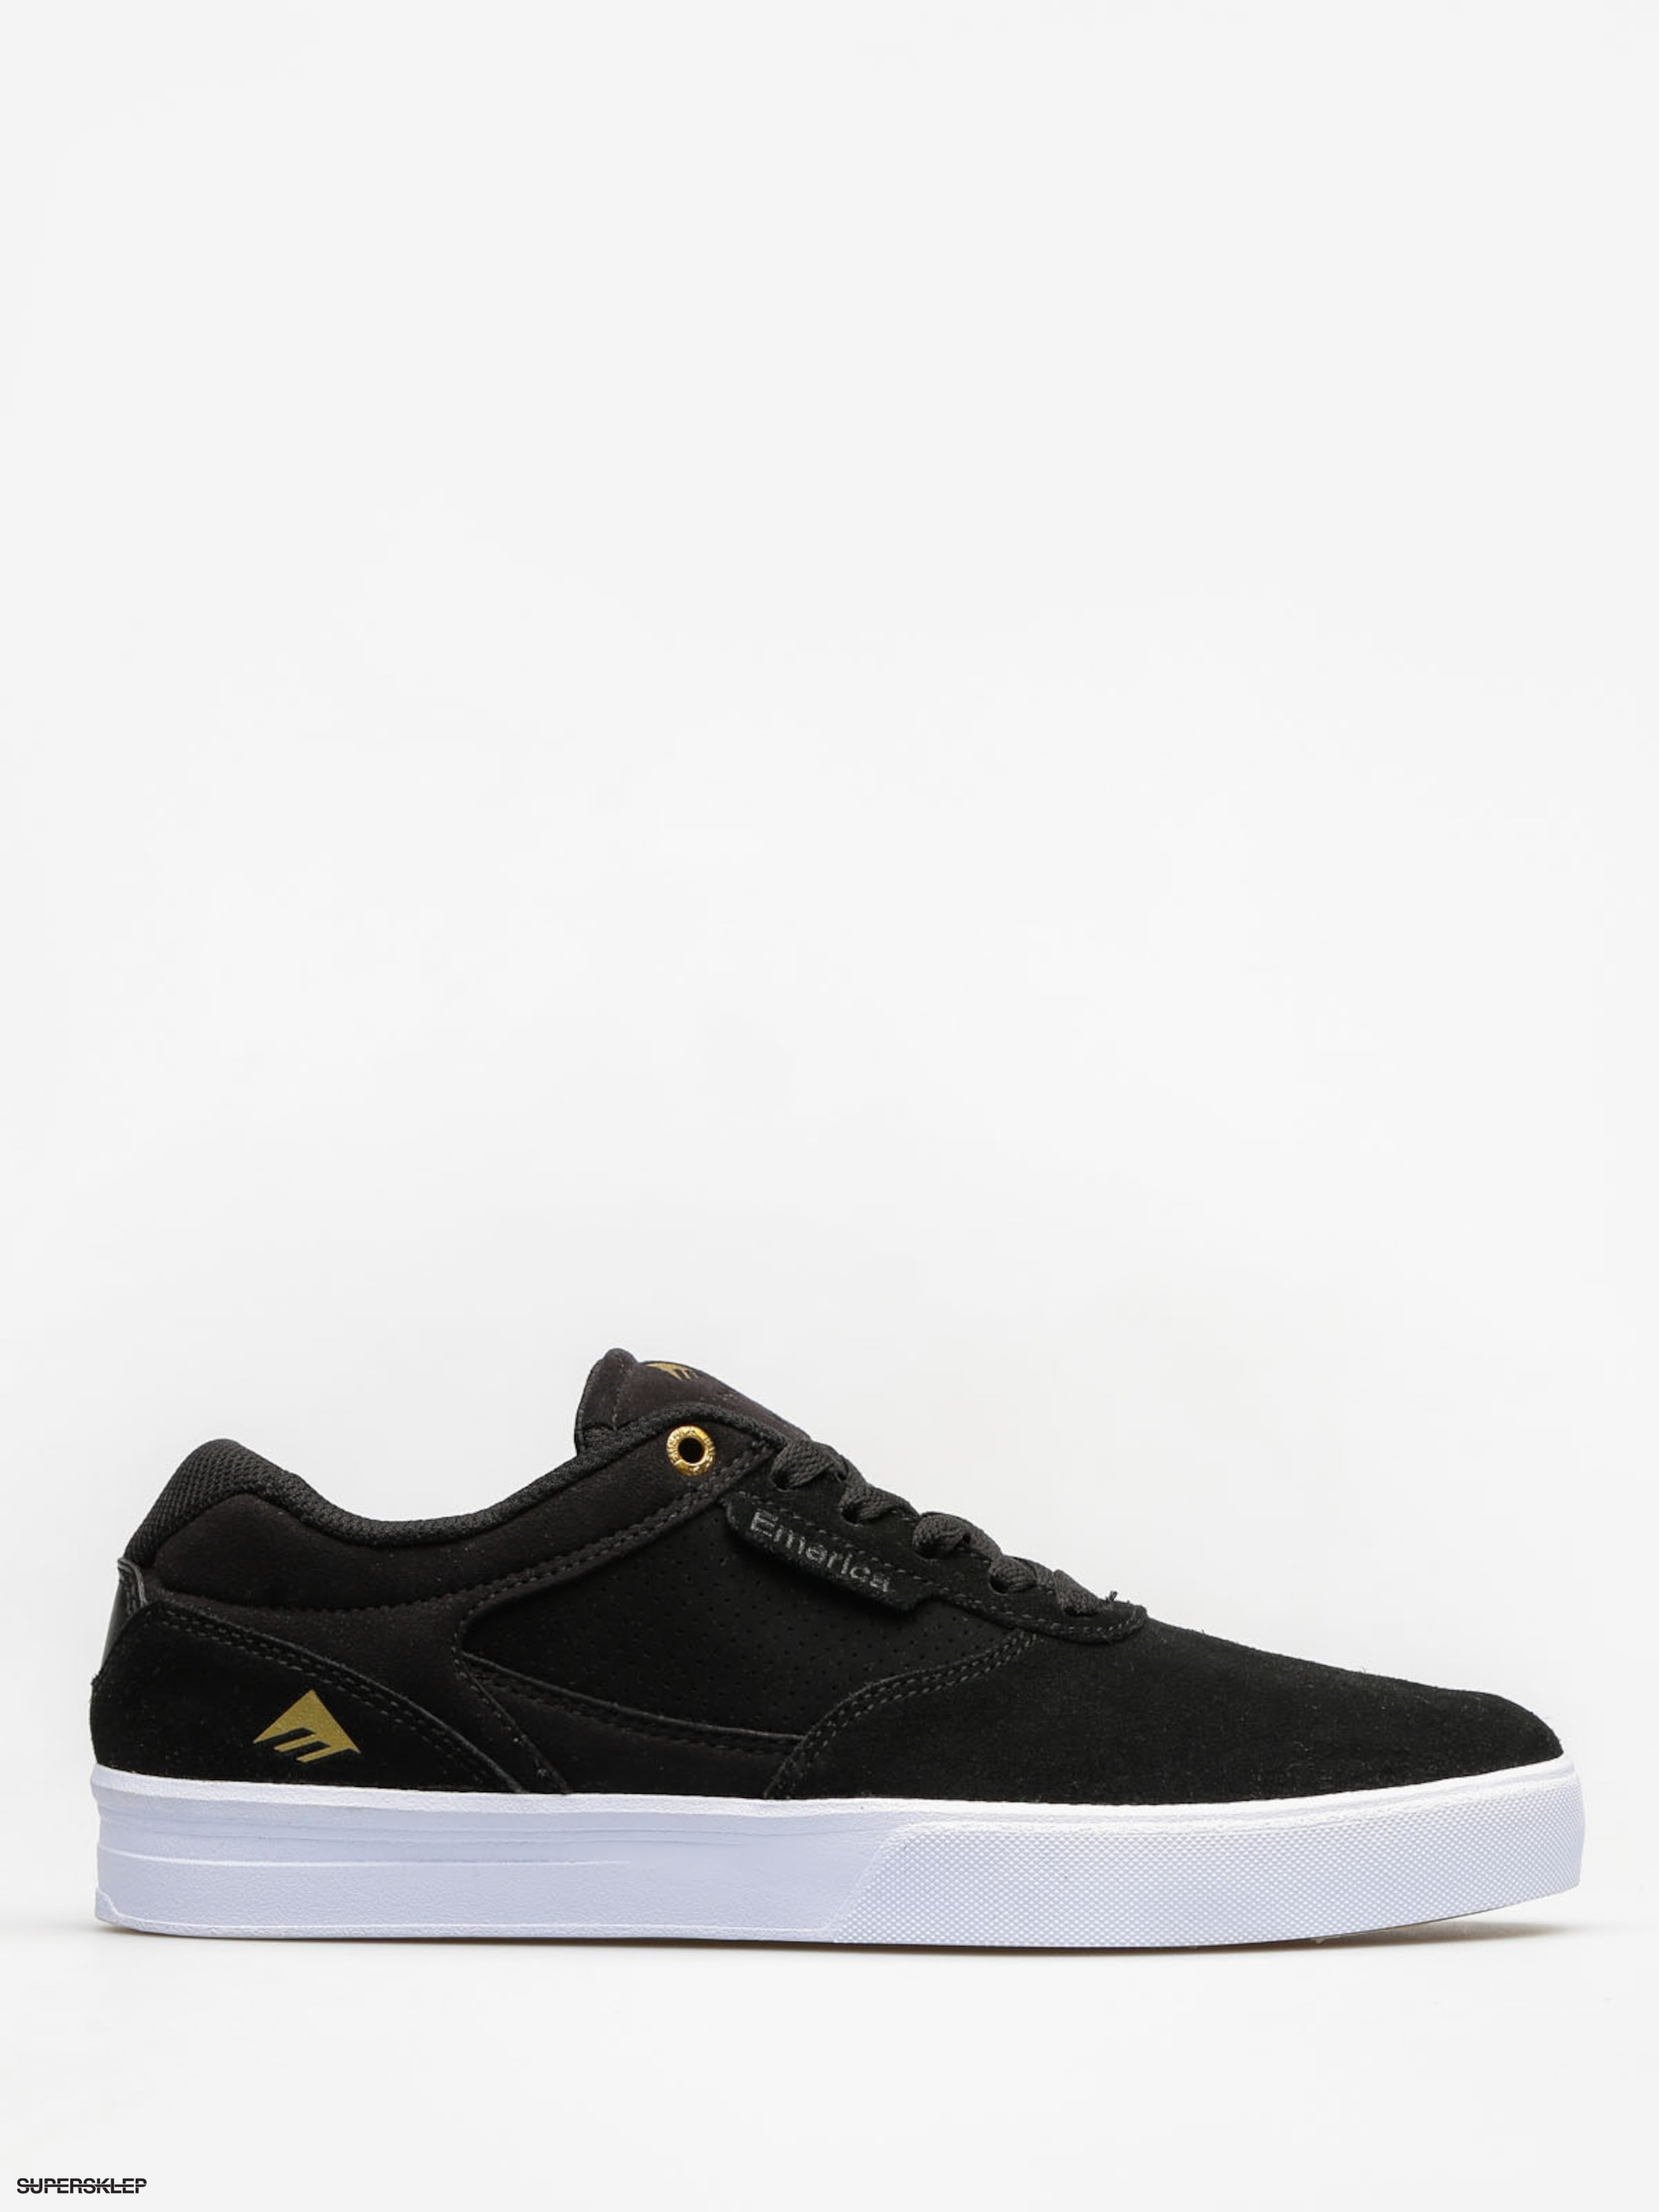 Buty Emerica Empire G6 (black/white)